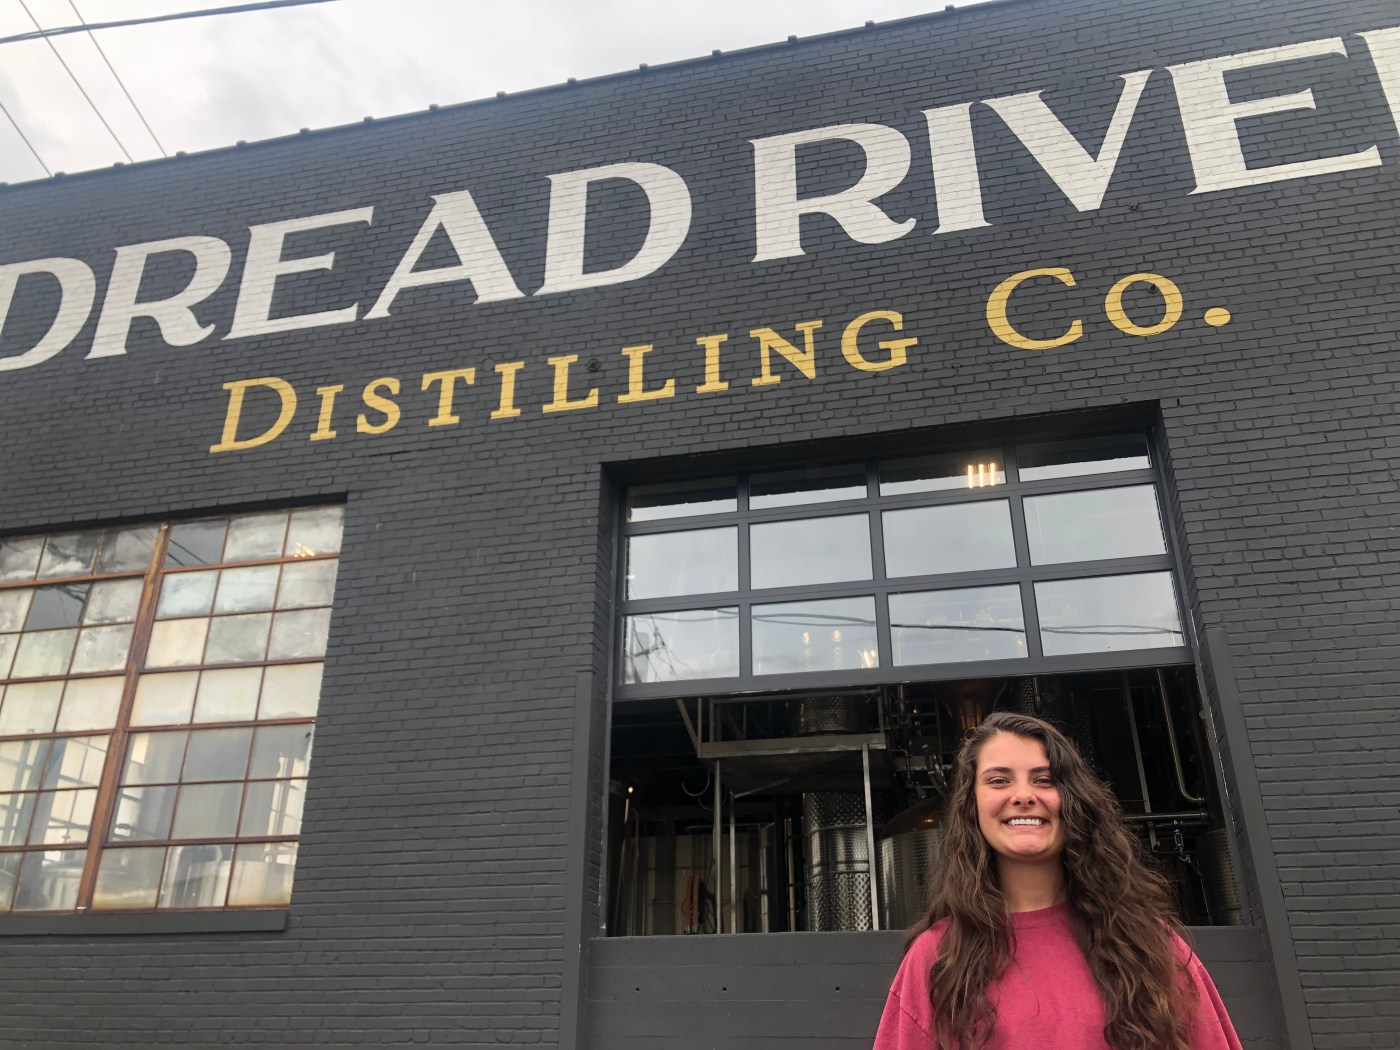 Skyler is a big fan of Dread River and all things bourbon. Photo via Pat Byington for Bham Now